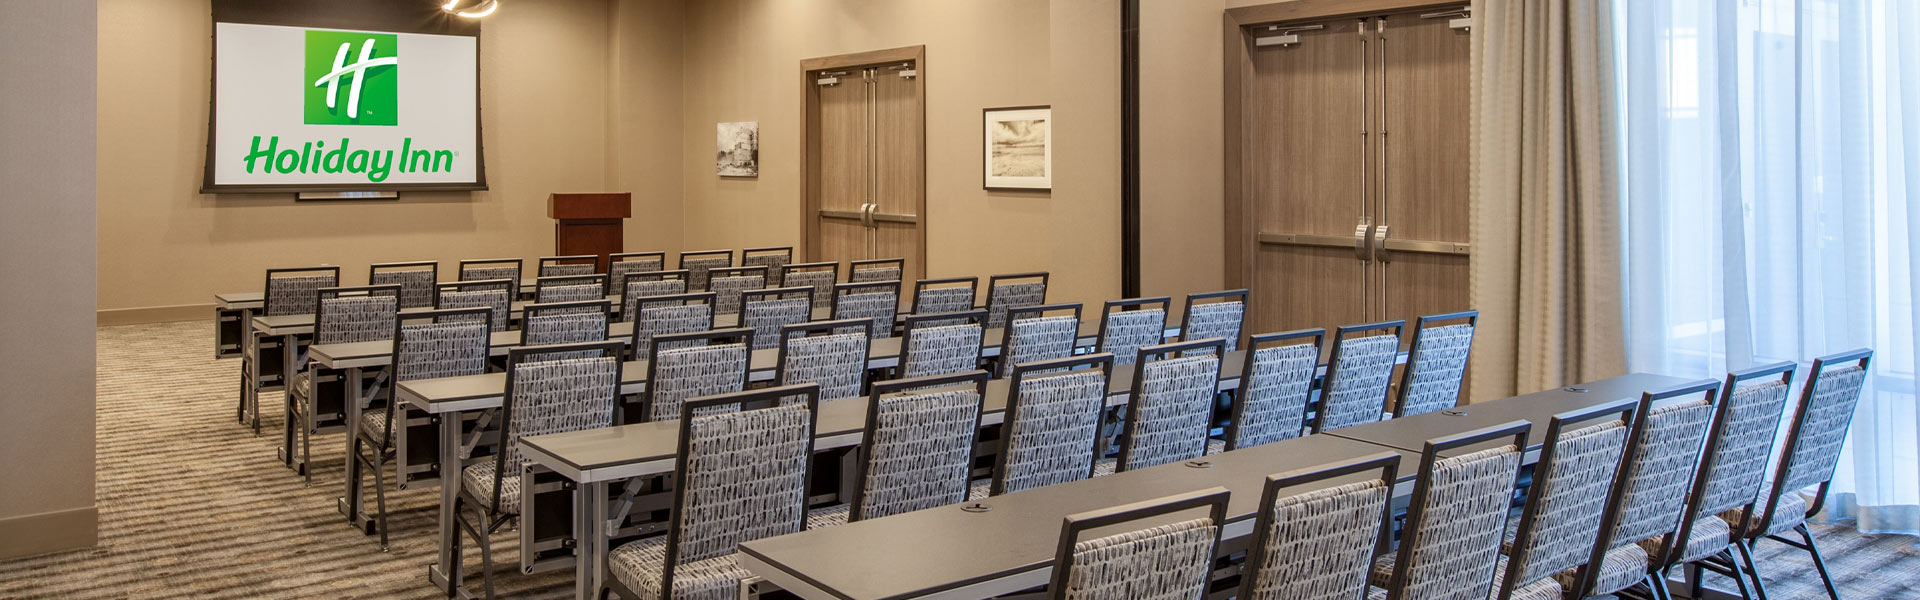 Holiday Inn Cleveland Clinic Ohio - Meetings Events